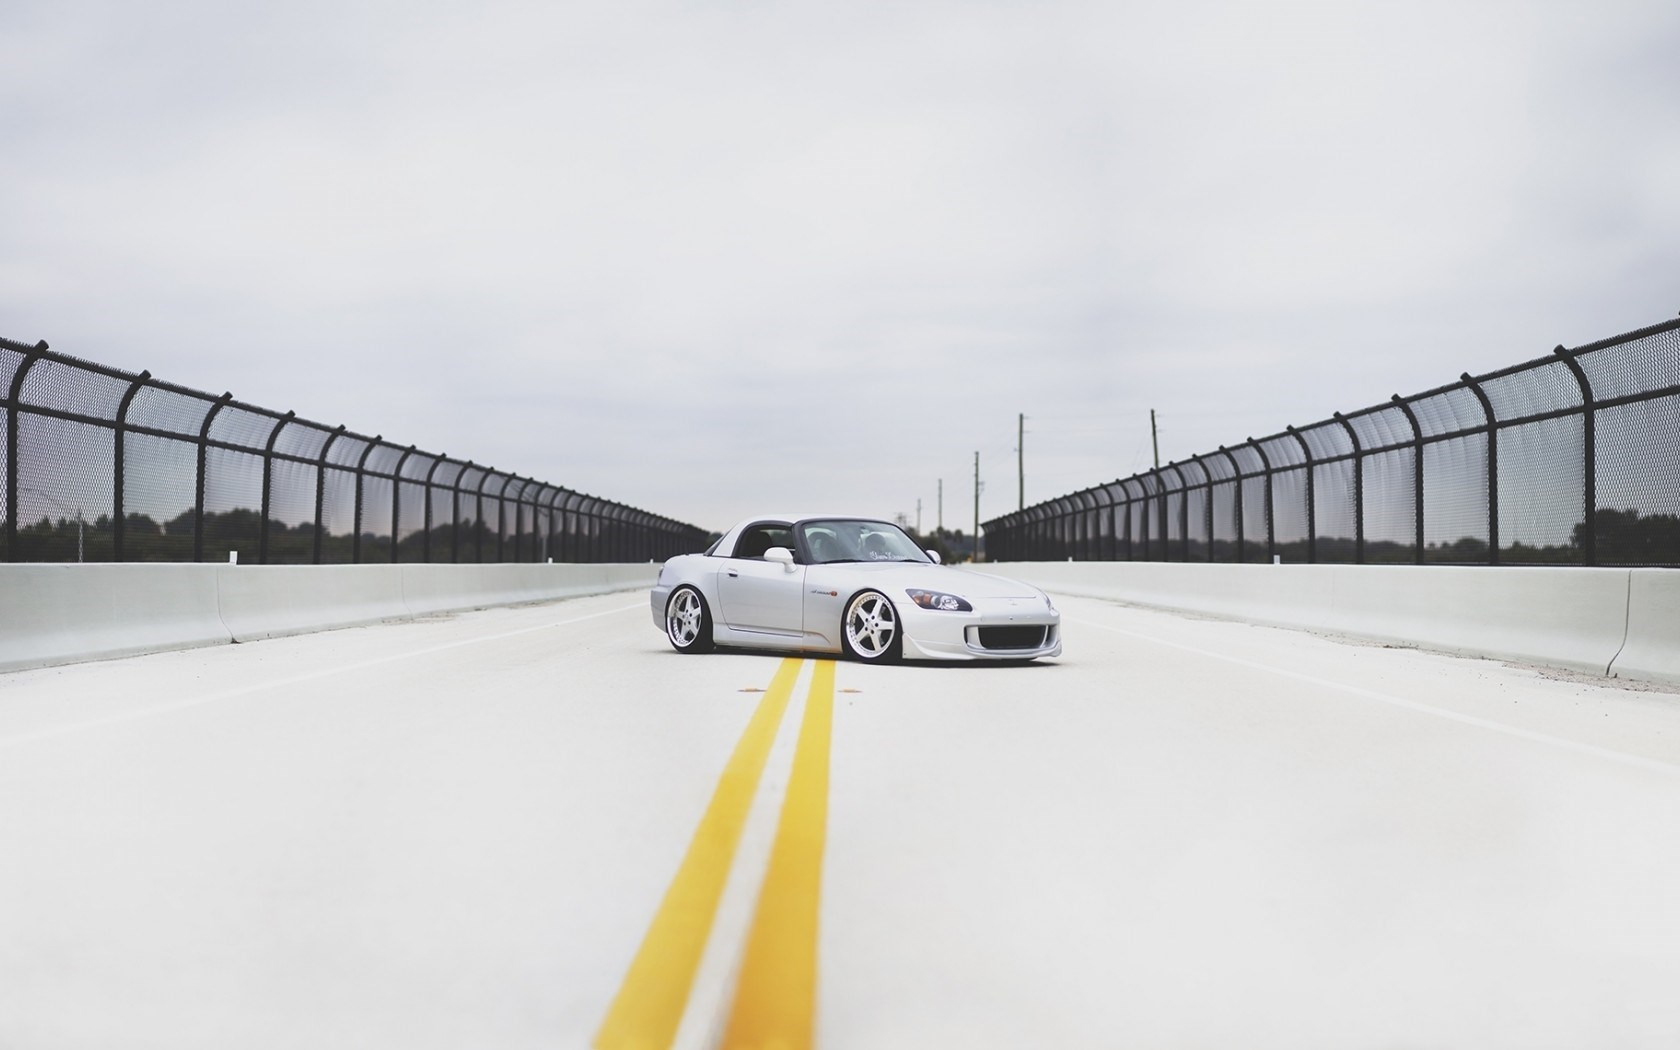 Honda S2000 Bridge